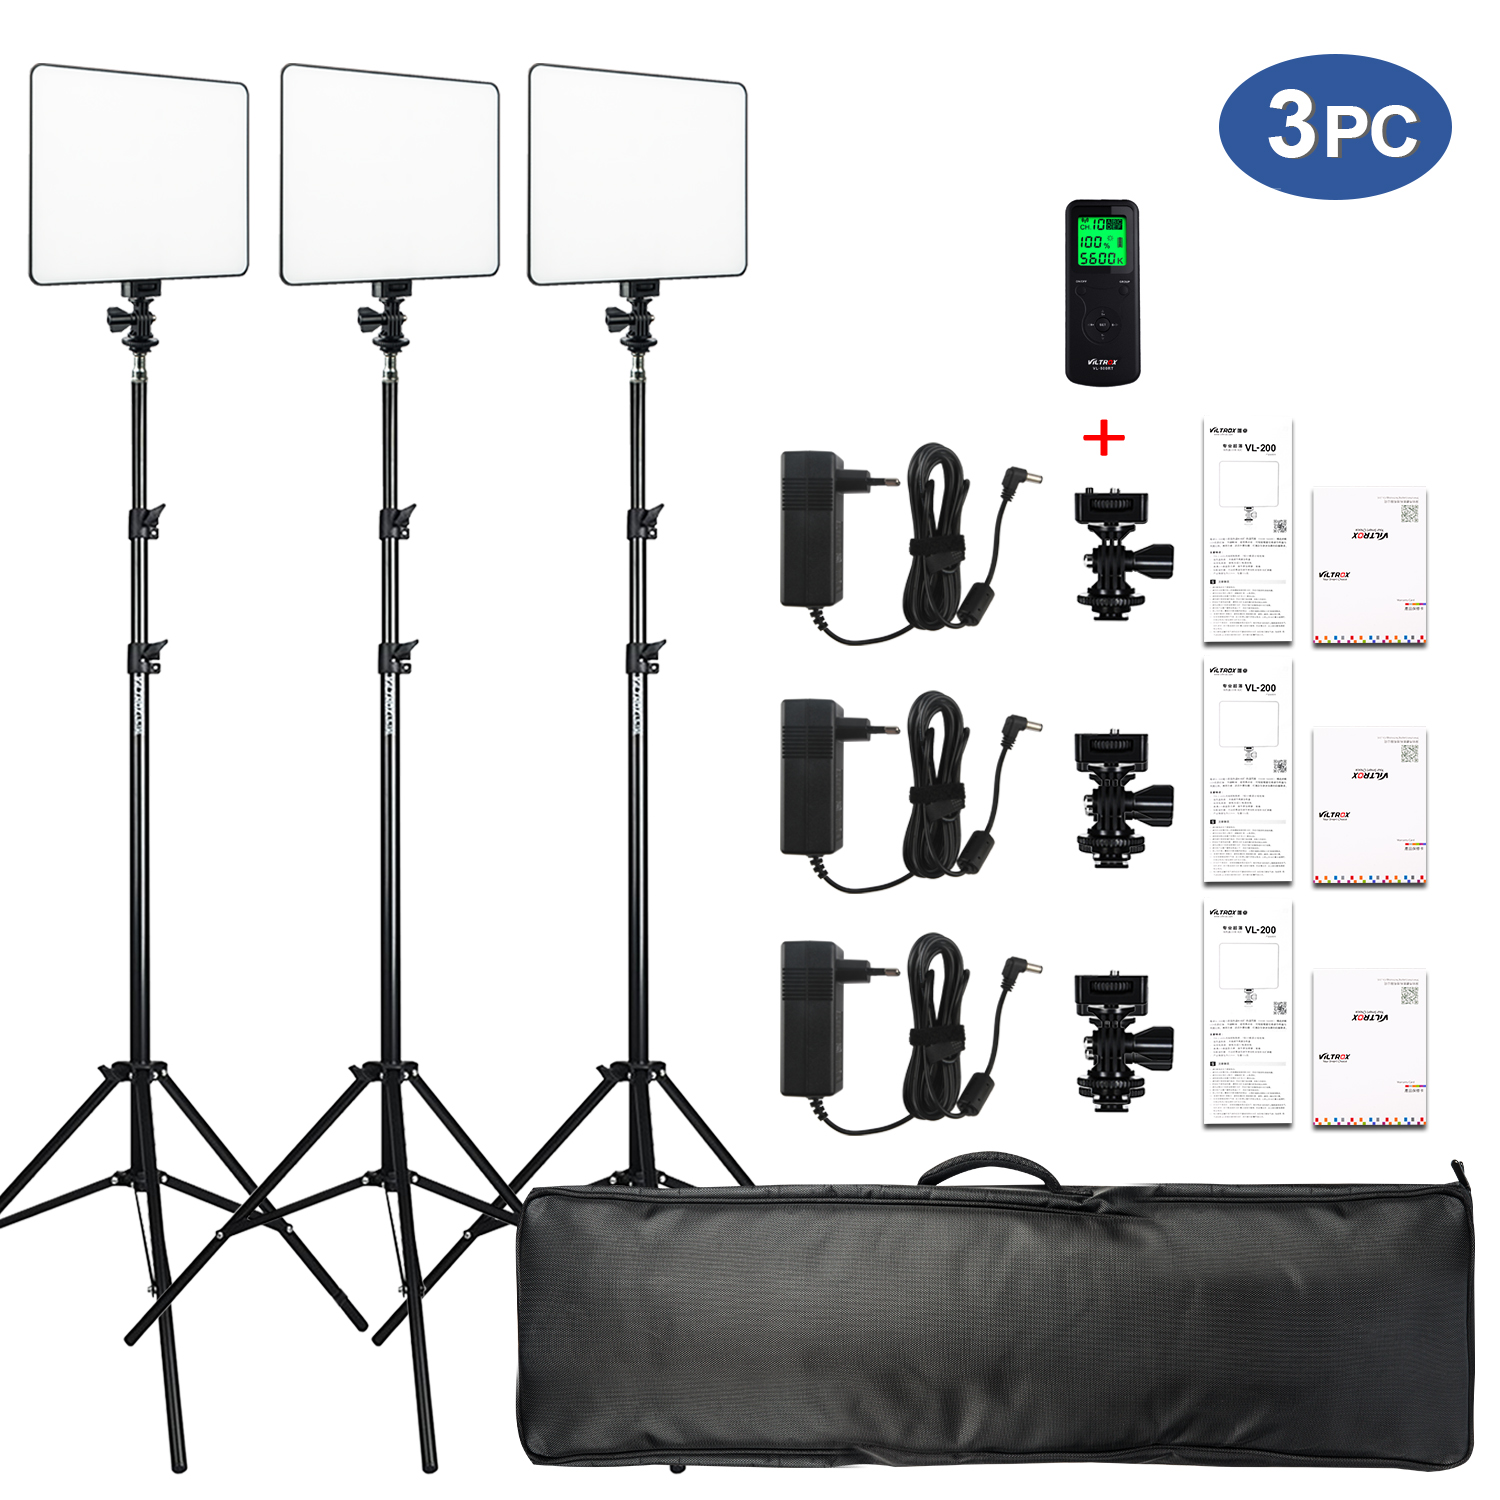 VILROX 3 pcs VL-200T Bi-color Dimmable Wireless remote LED Video Light Panel Lighting Kit+75